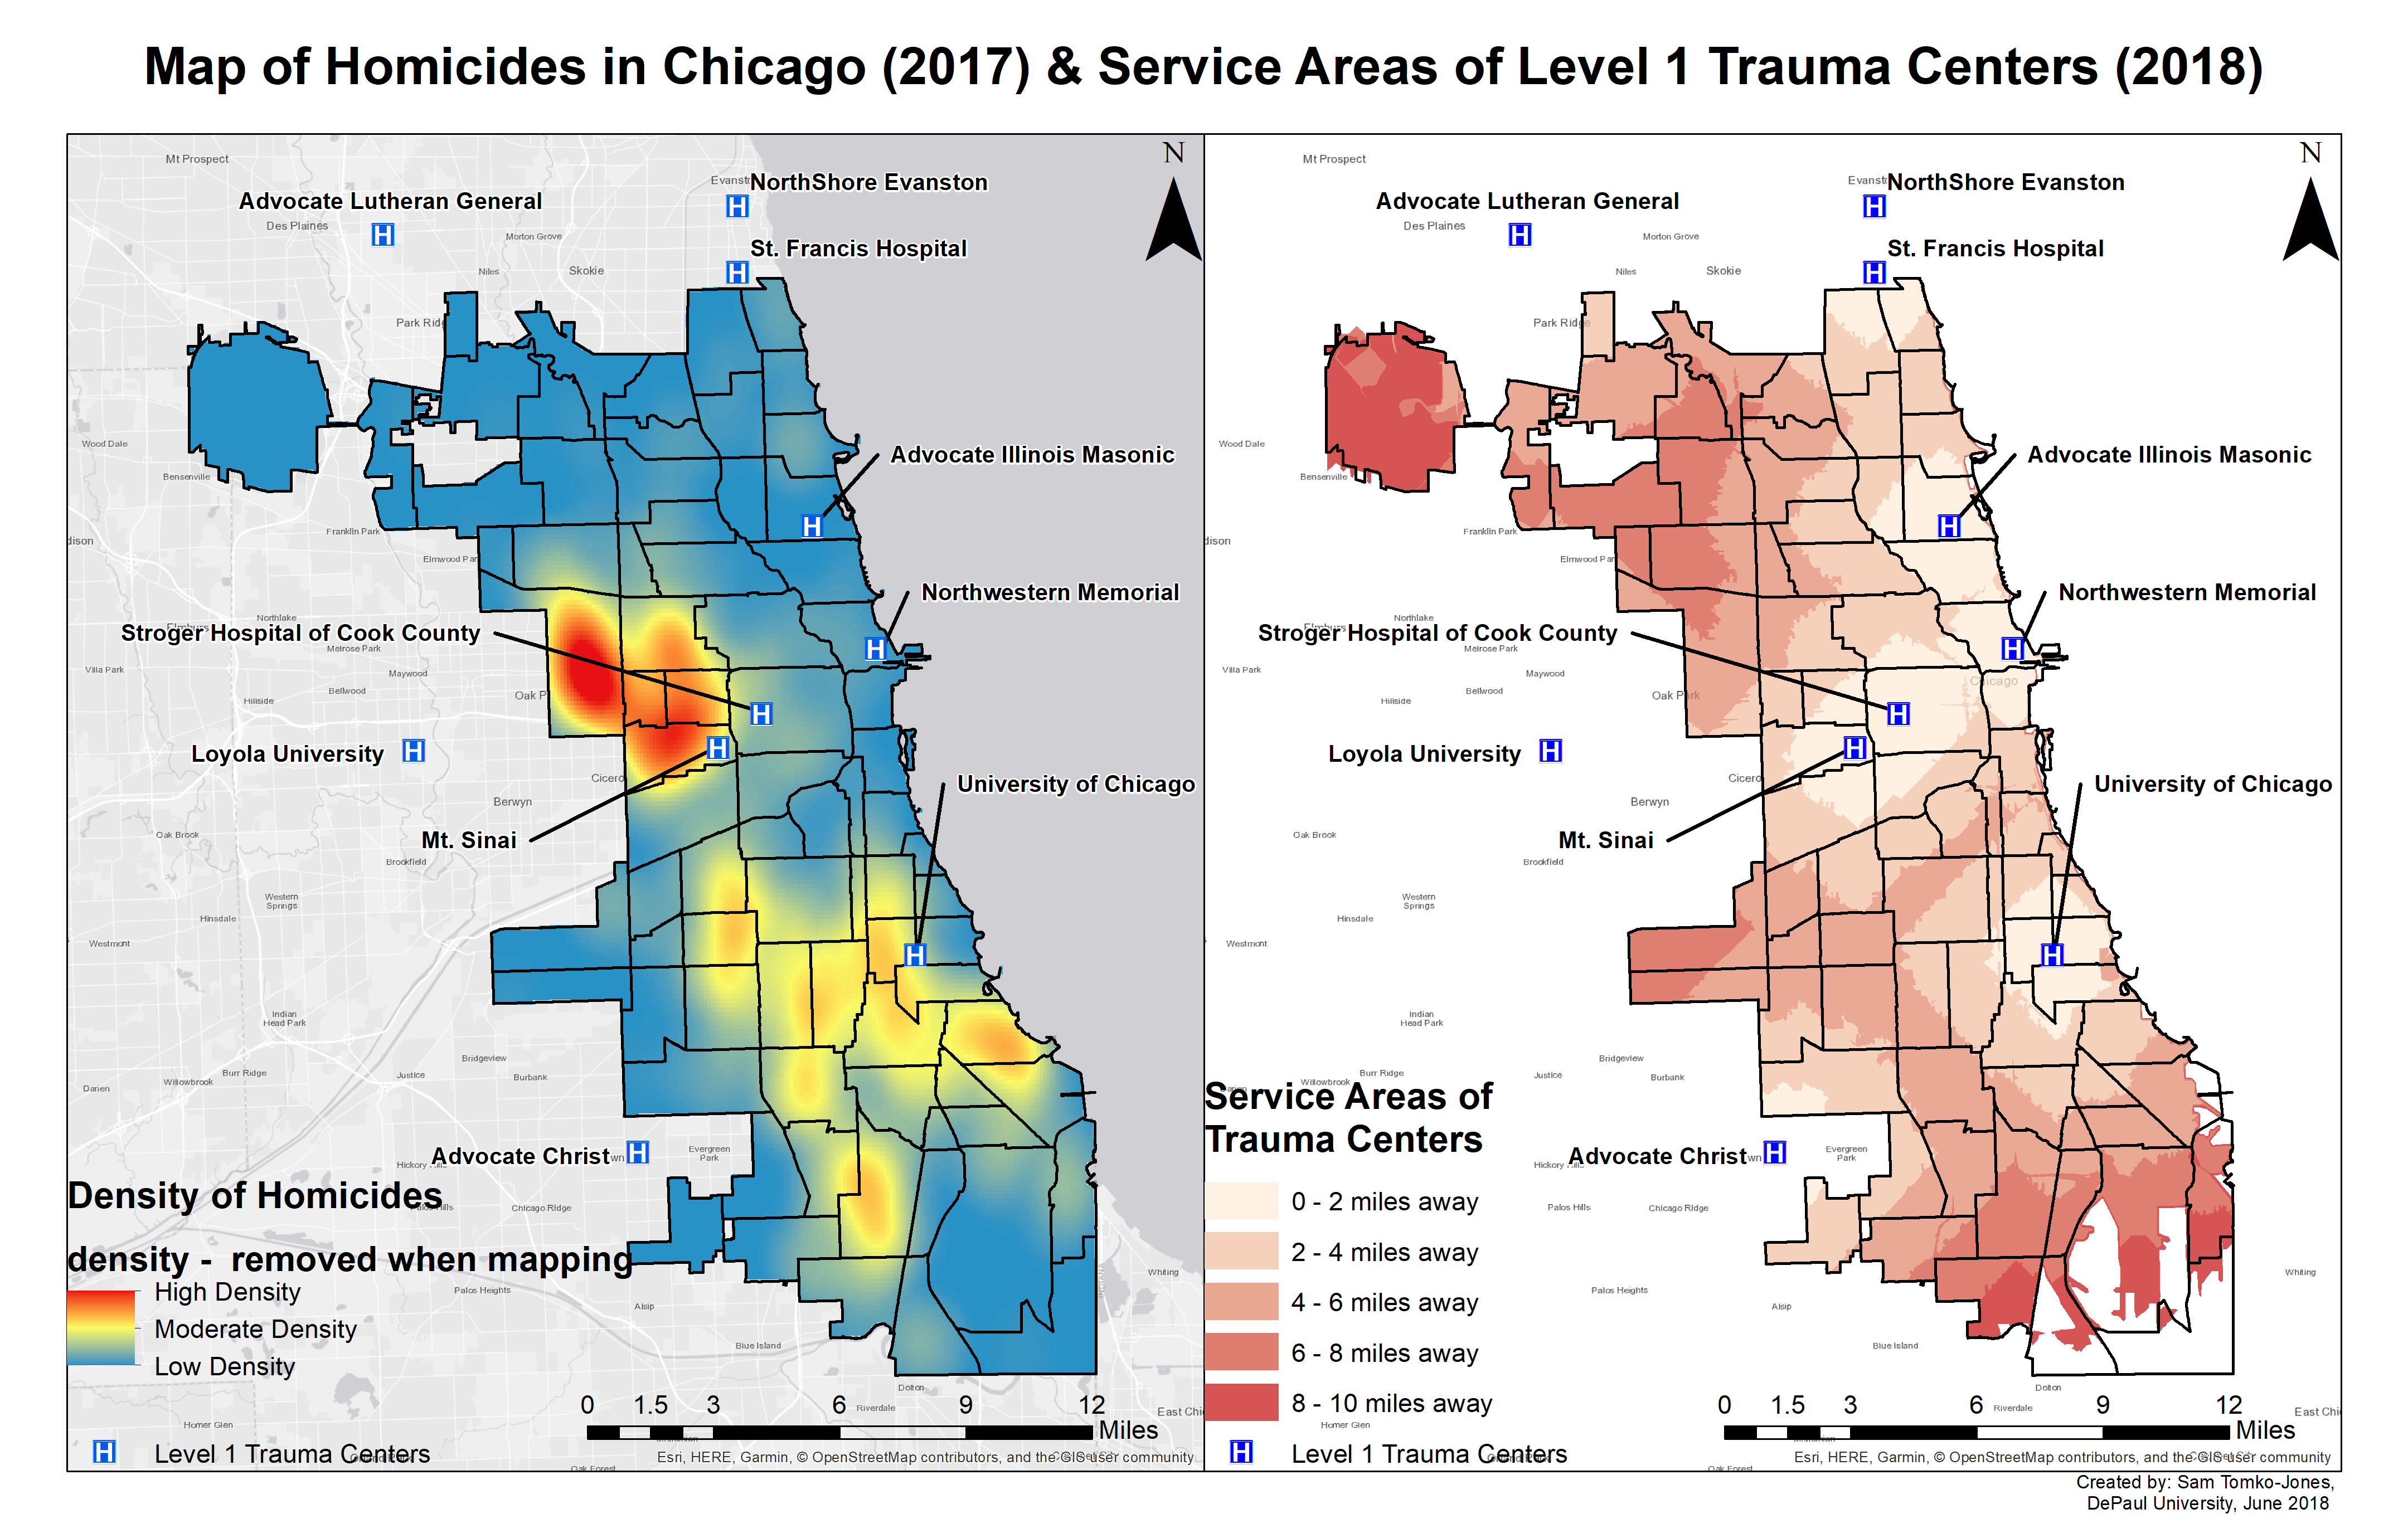 January 2019: Homicides in Chicago and Service Areas of Level 1